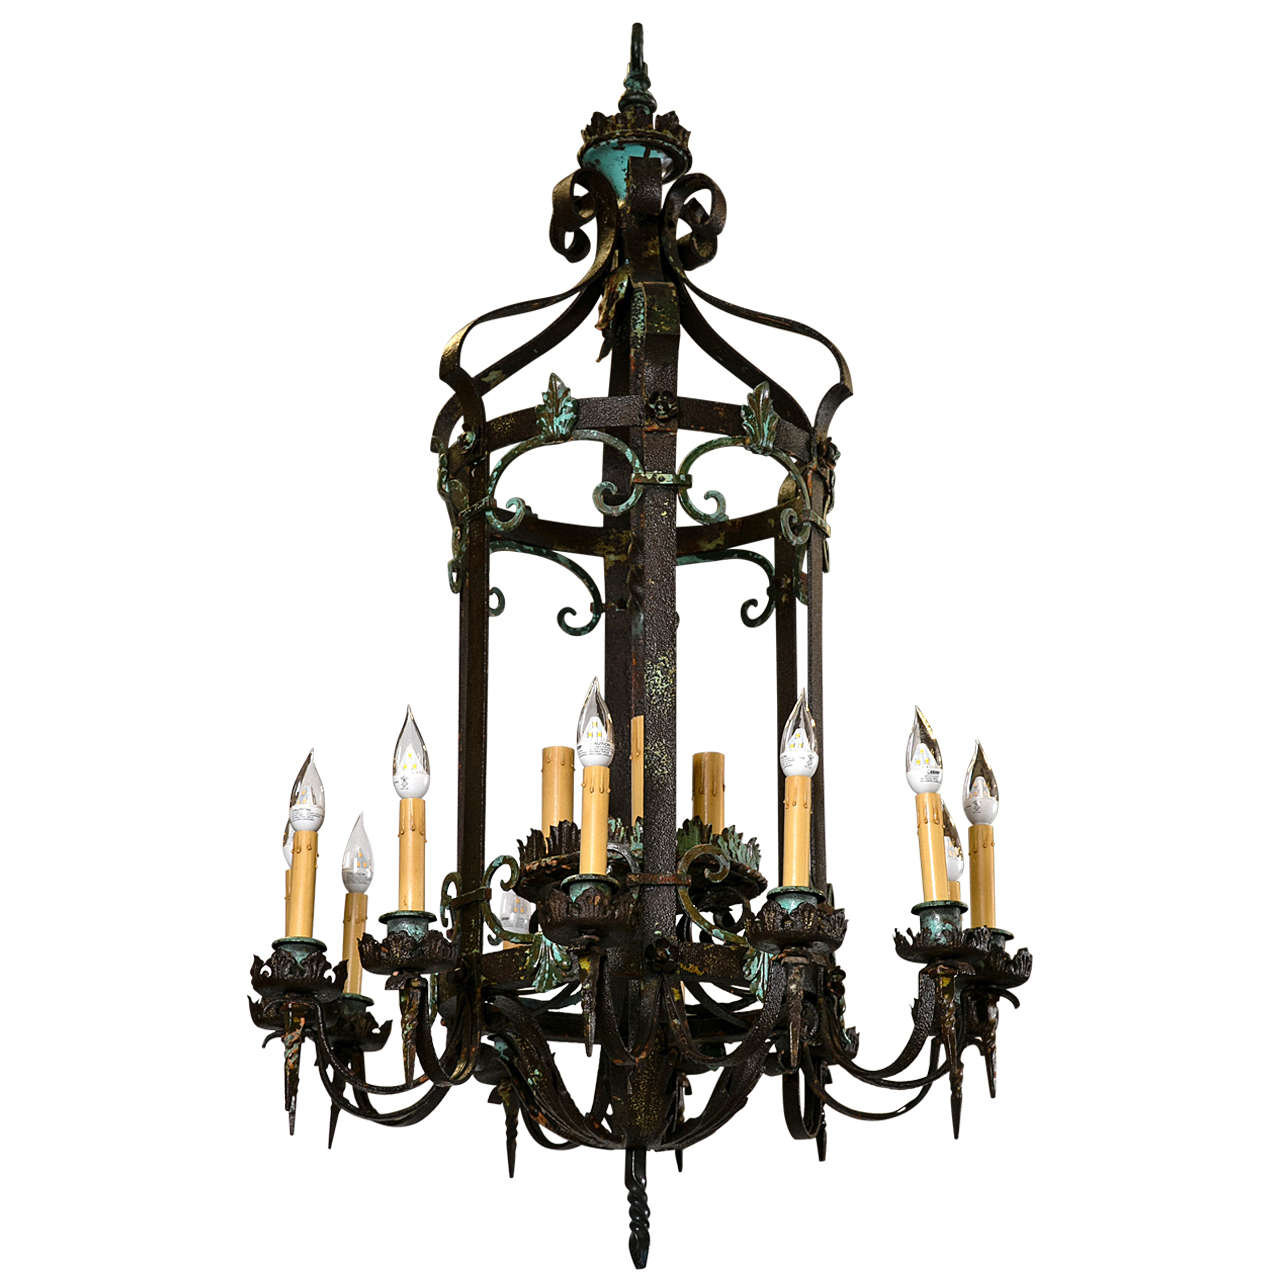 Antique wrought iron chandelier from greenwich ct estate for sale